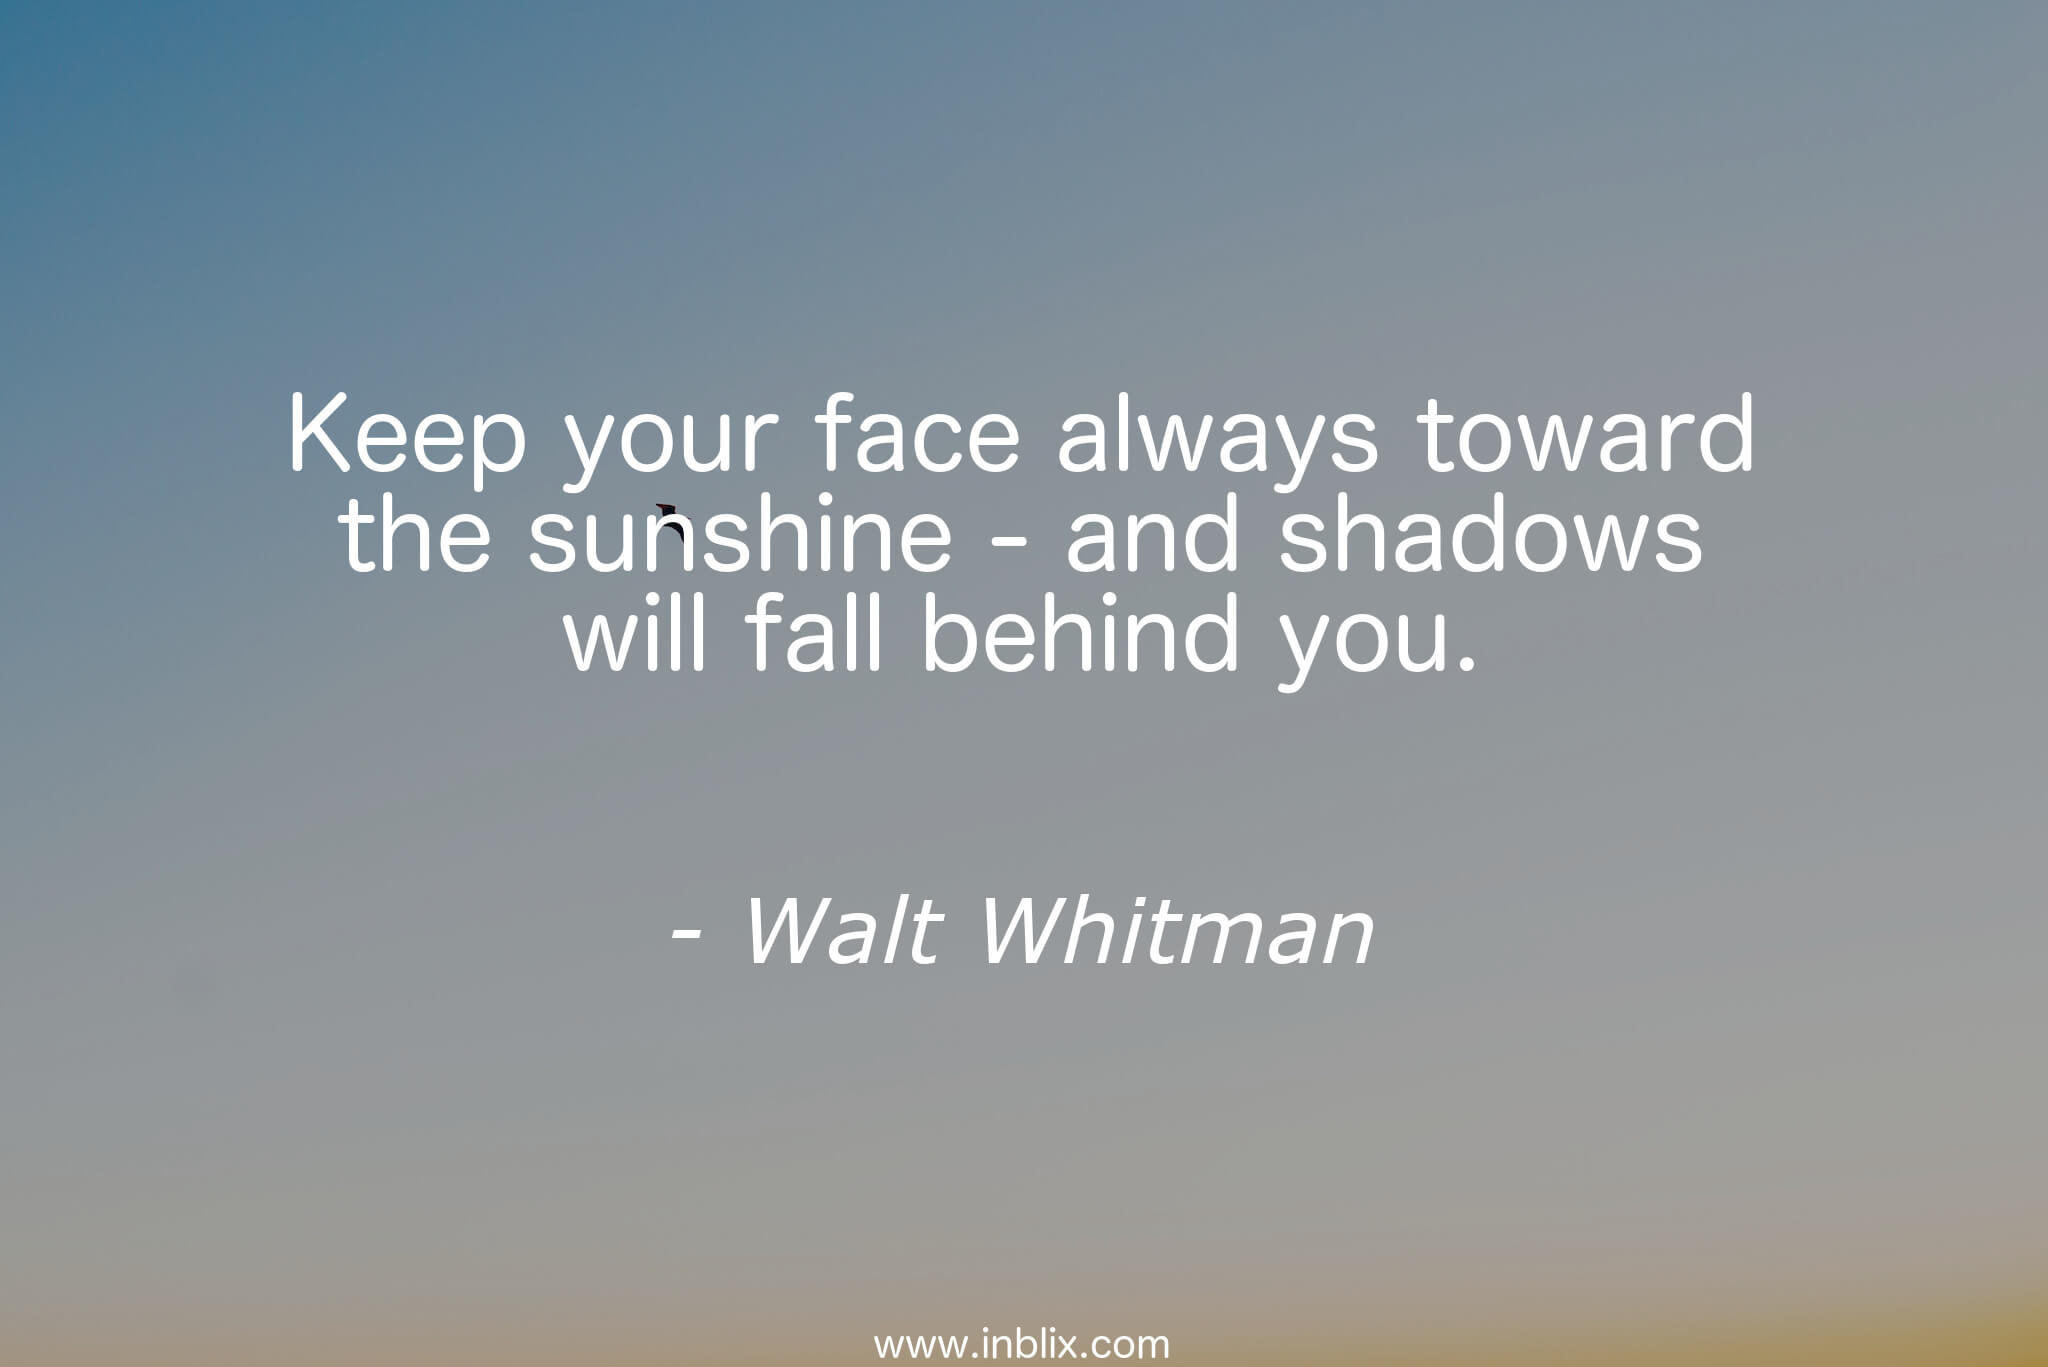 Keep your face always towards toward the sunshine - and shadows will fall behind you.